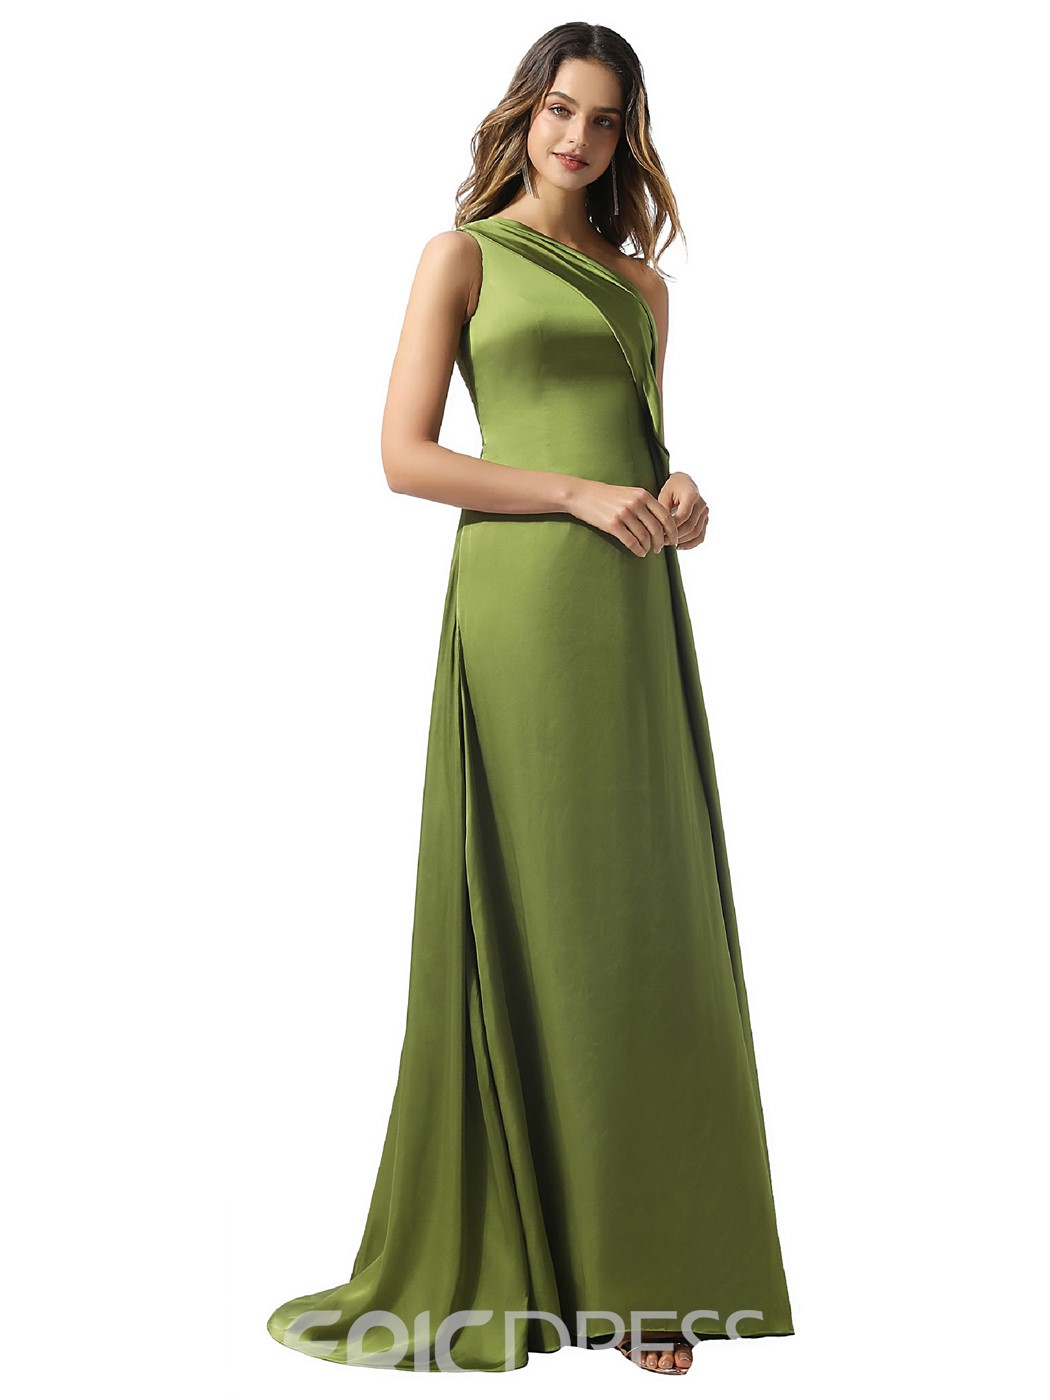 Ericdress Floor-Length A-Line Sleeveless Evening Dress 2020